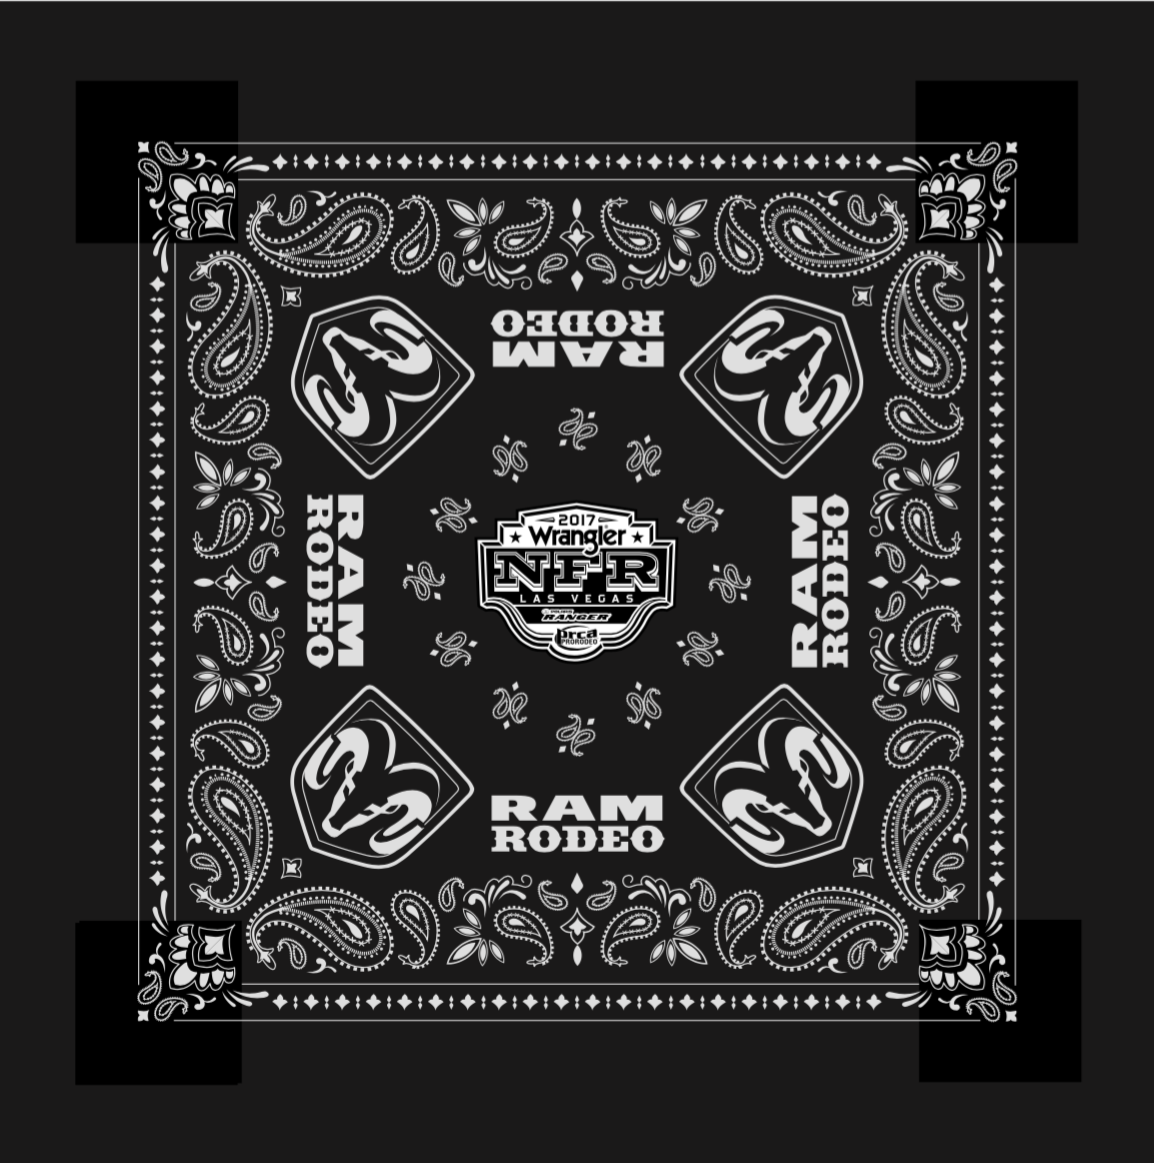 Official 2017 Ram Rodeo Bandana